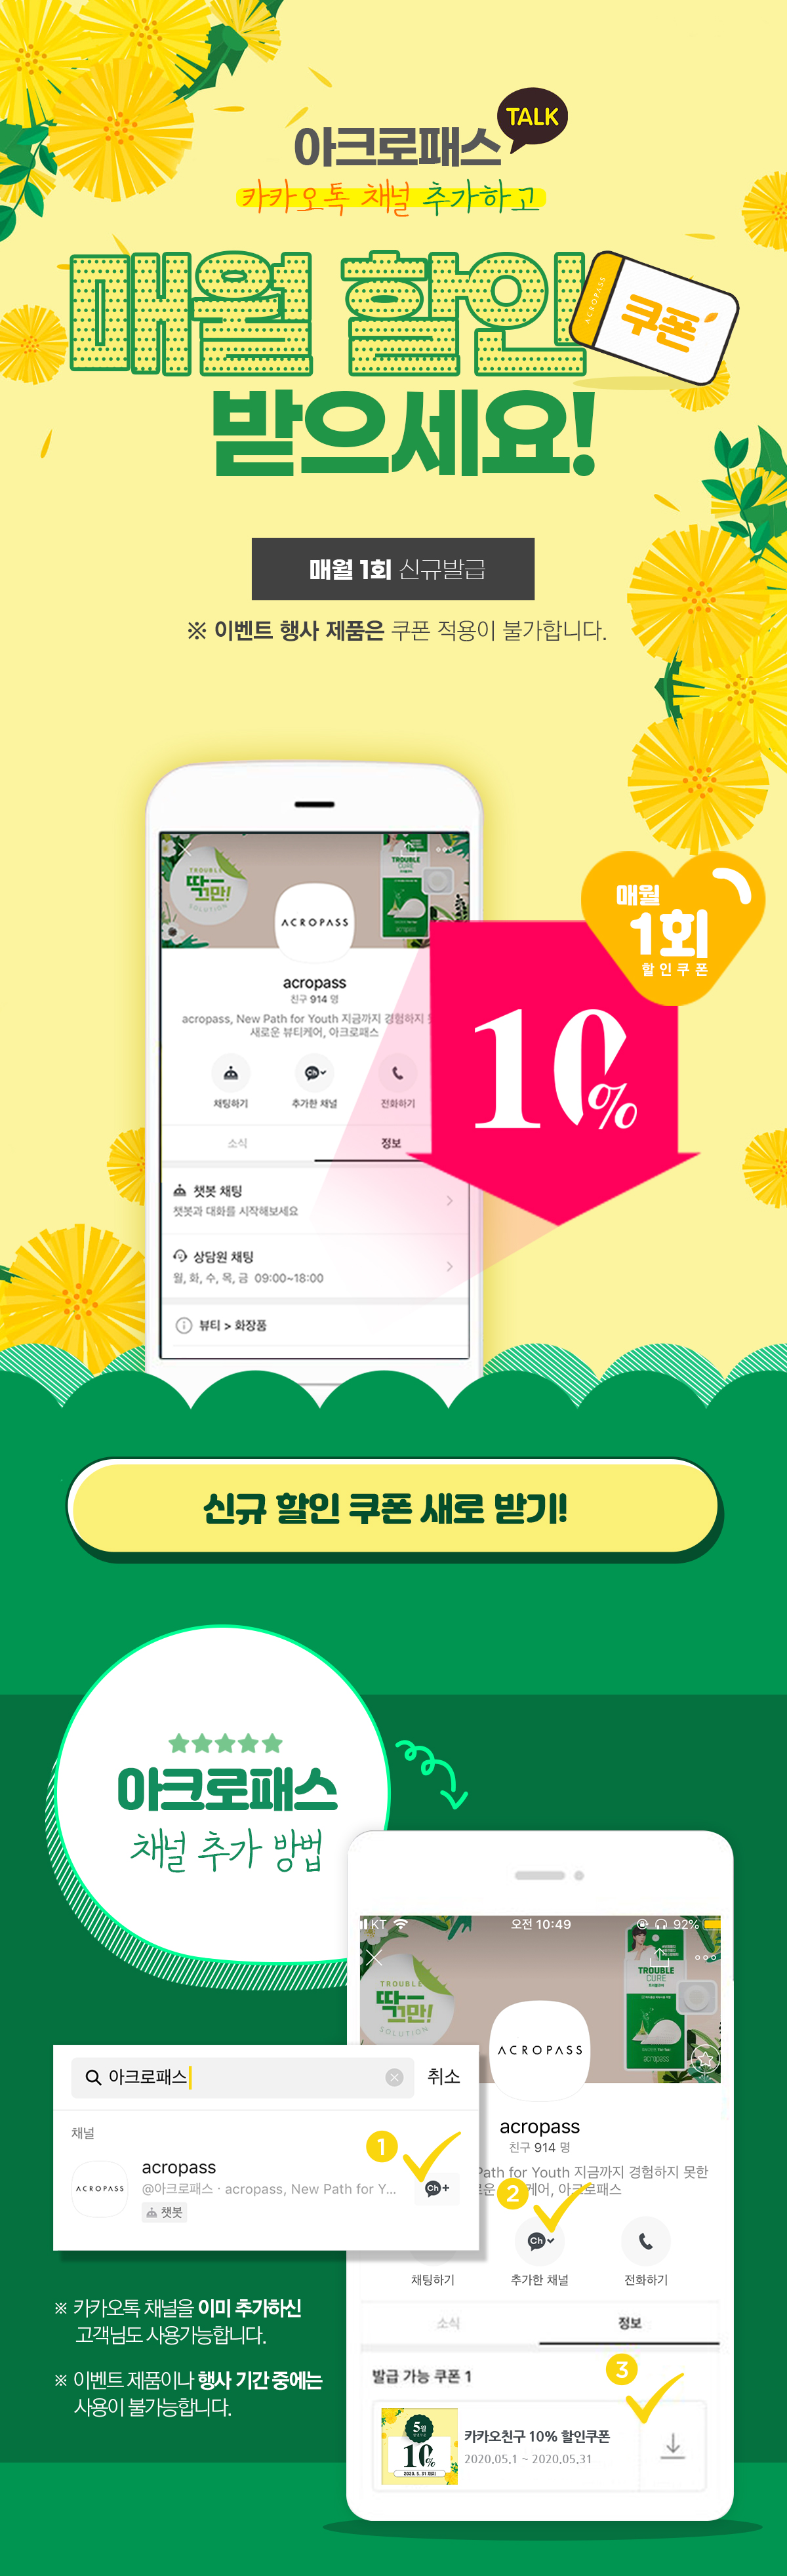 05_eventdetail_June_kakao